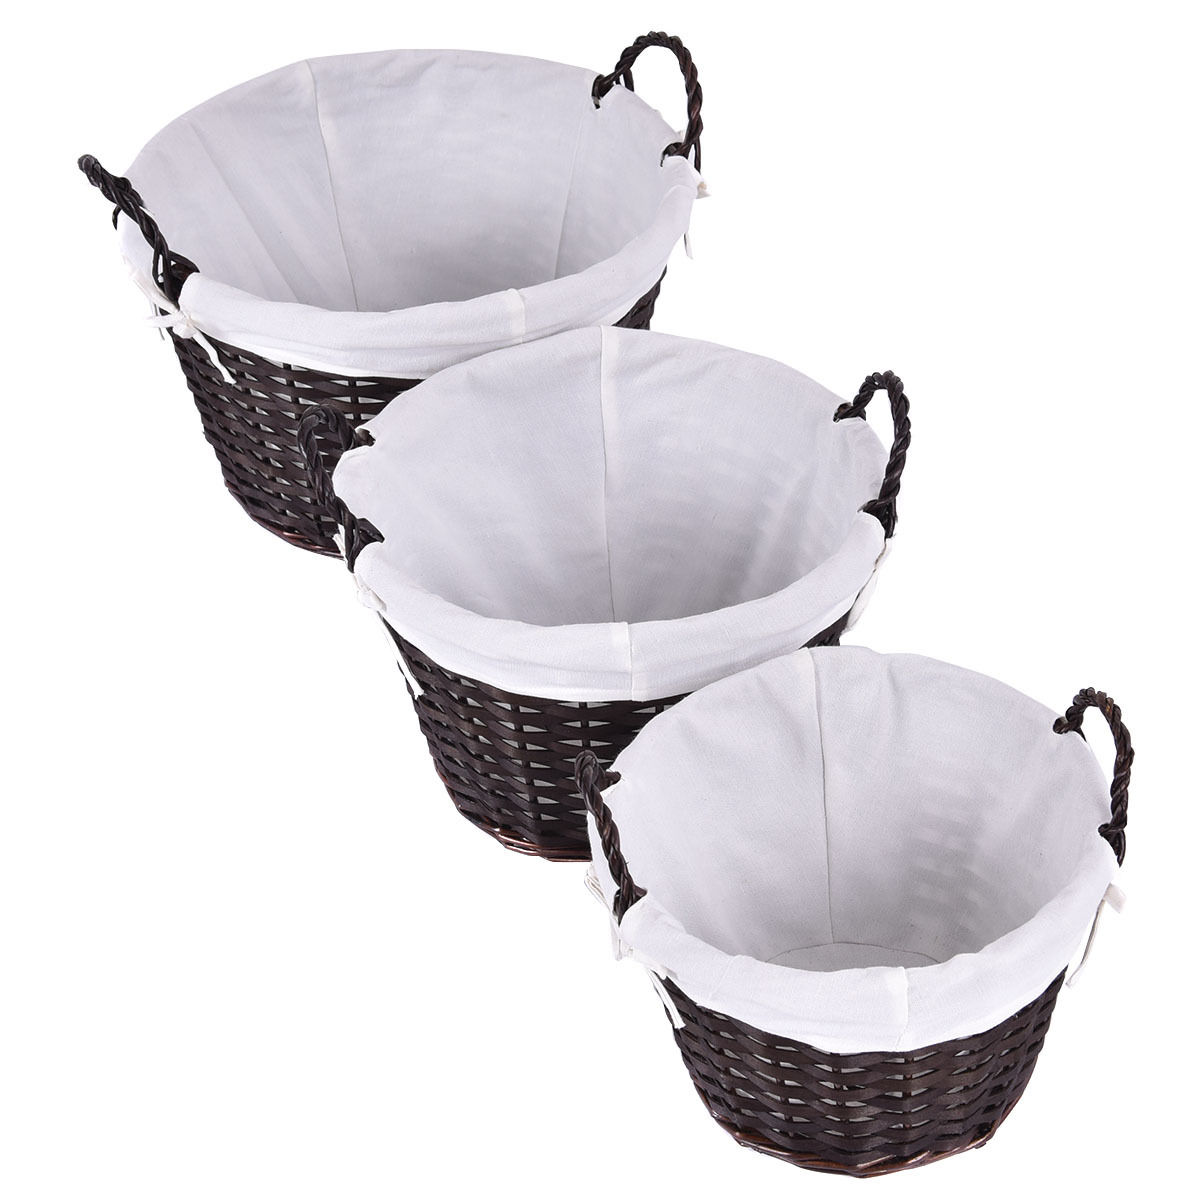 Costway Set of 3 Round Hand-woven Willow Wicker Storage Basket With White Lining